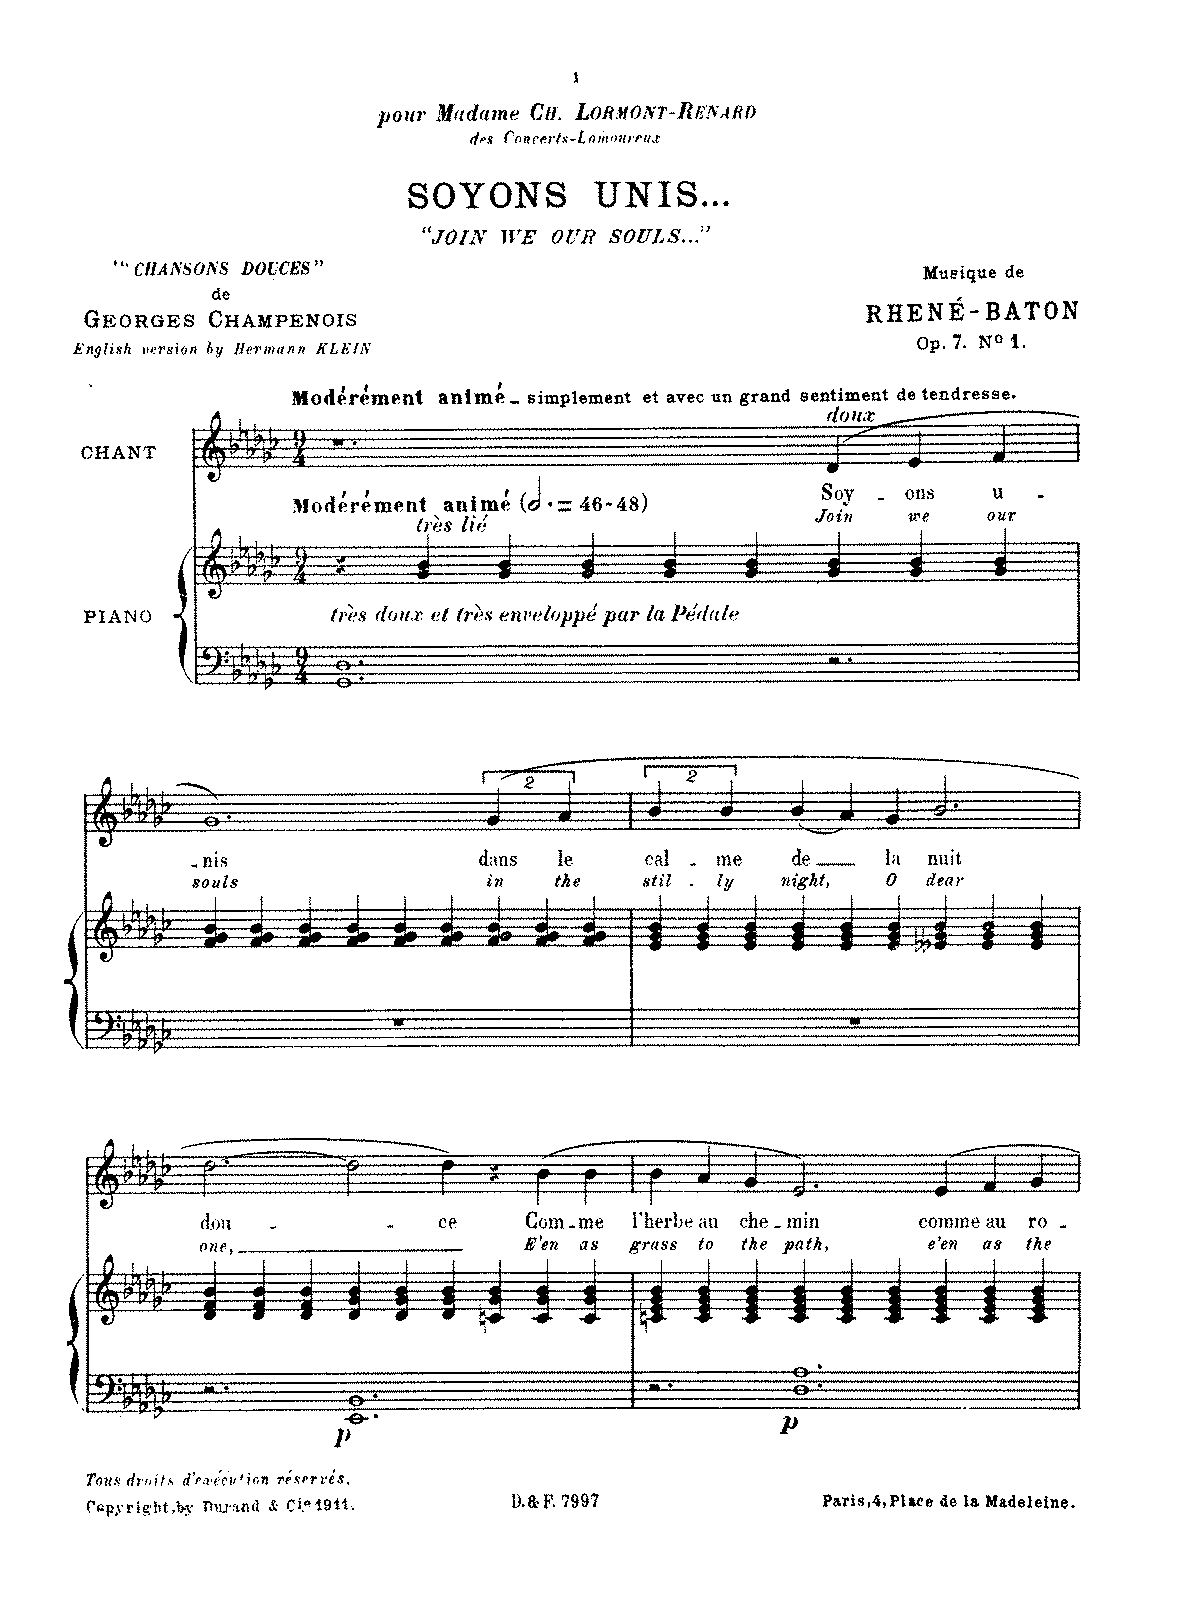 PMLP61549-Rhené-Baton - Chansons douces, Op. 7 (voice and piano).pdf